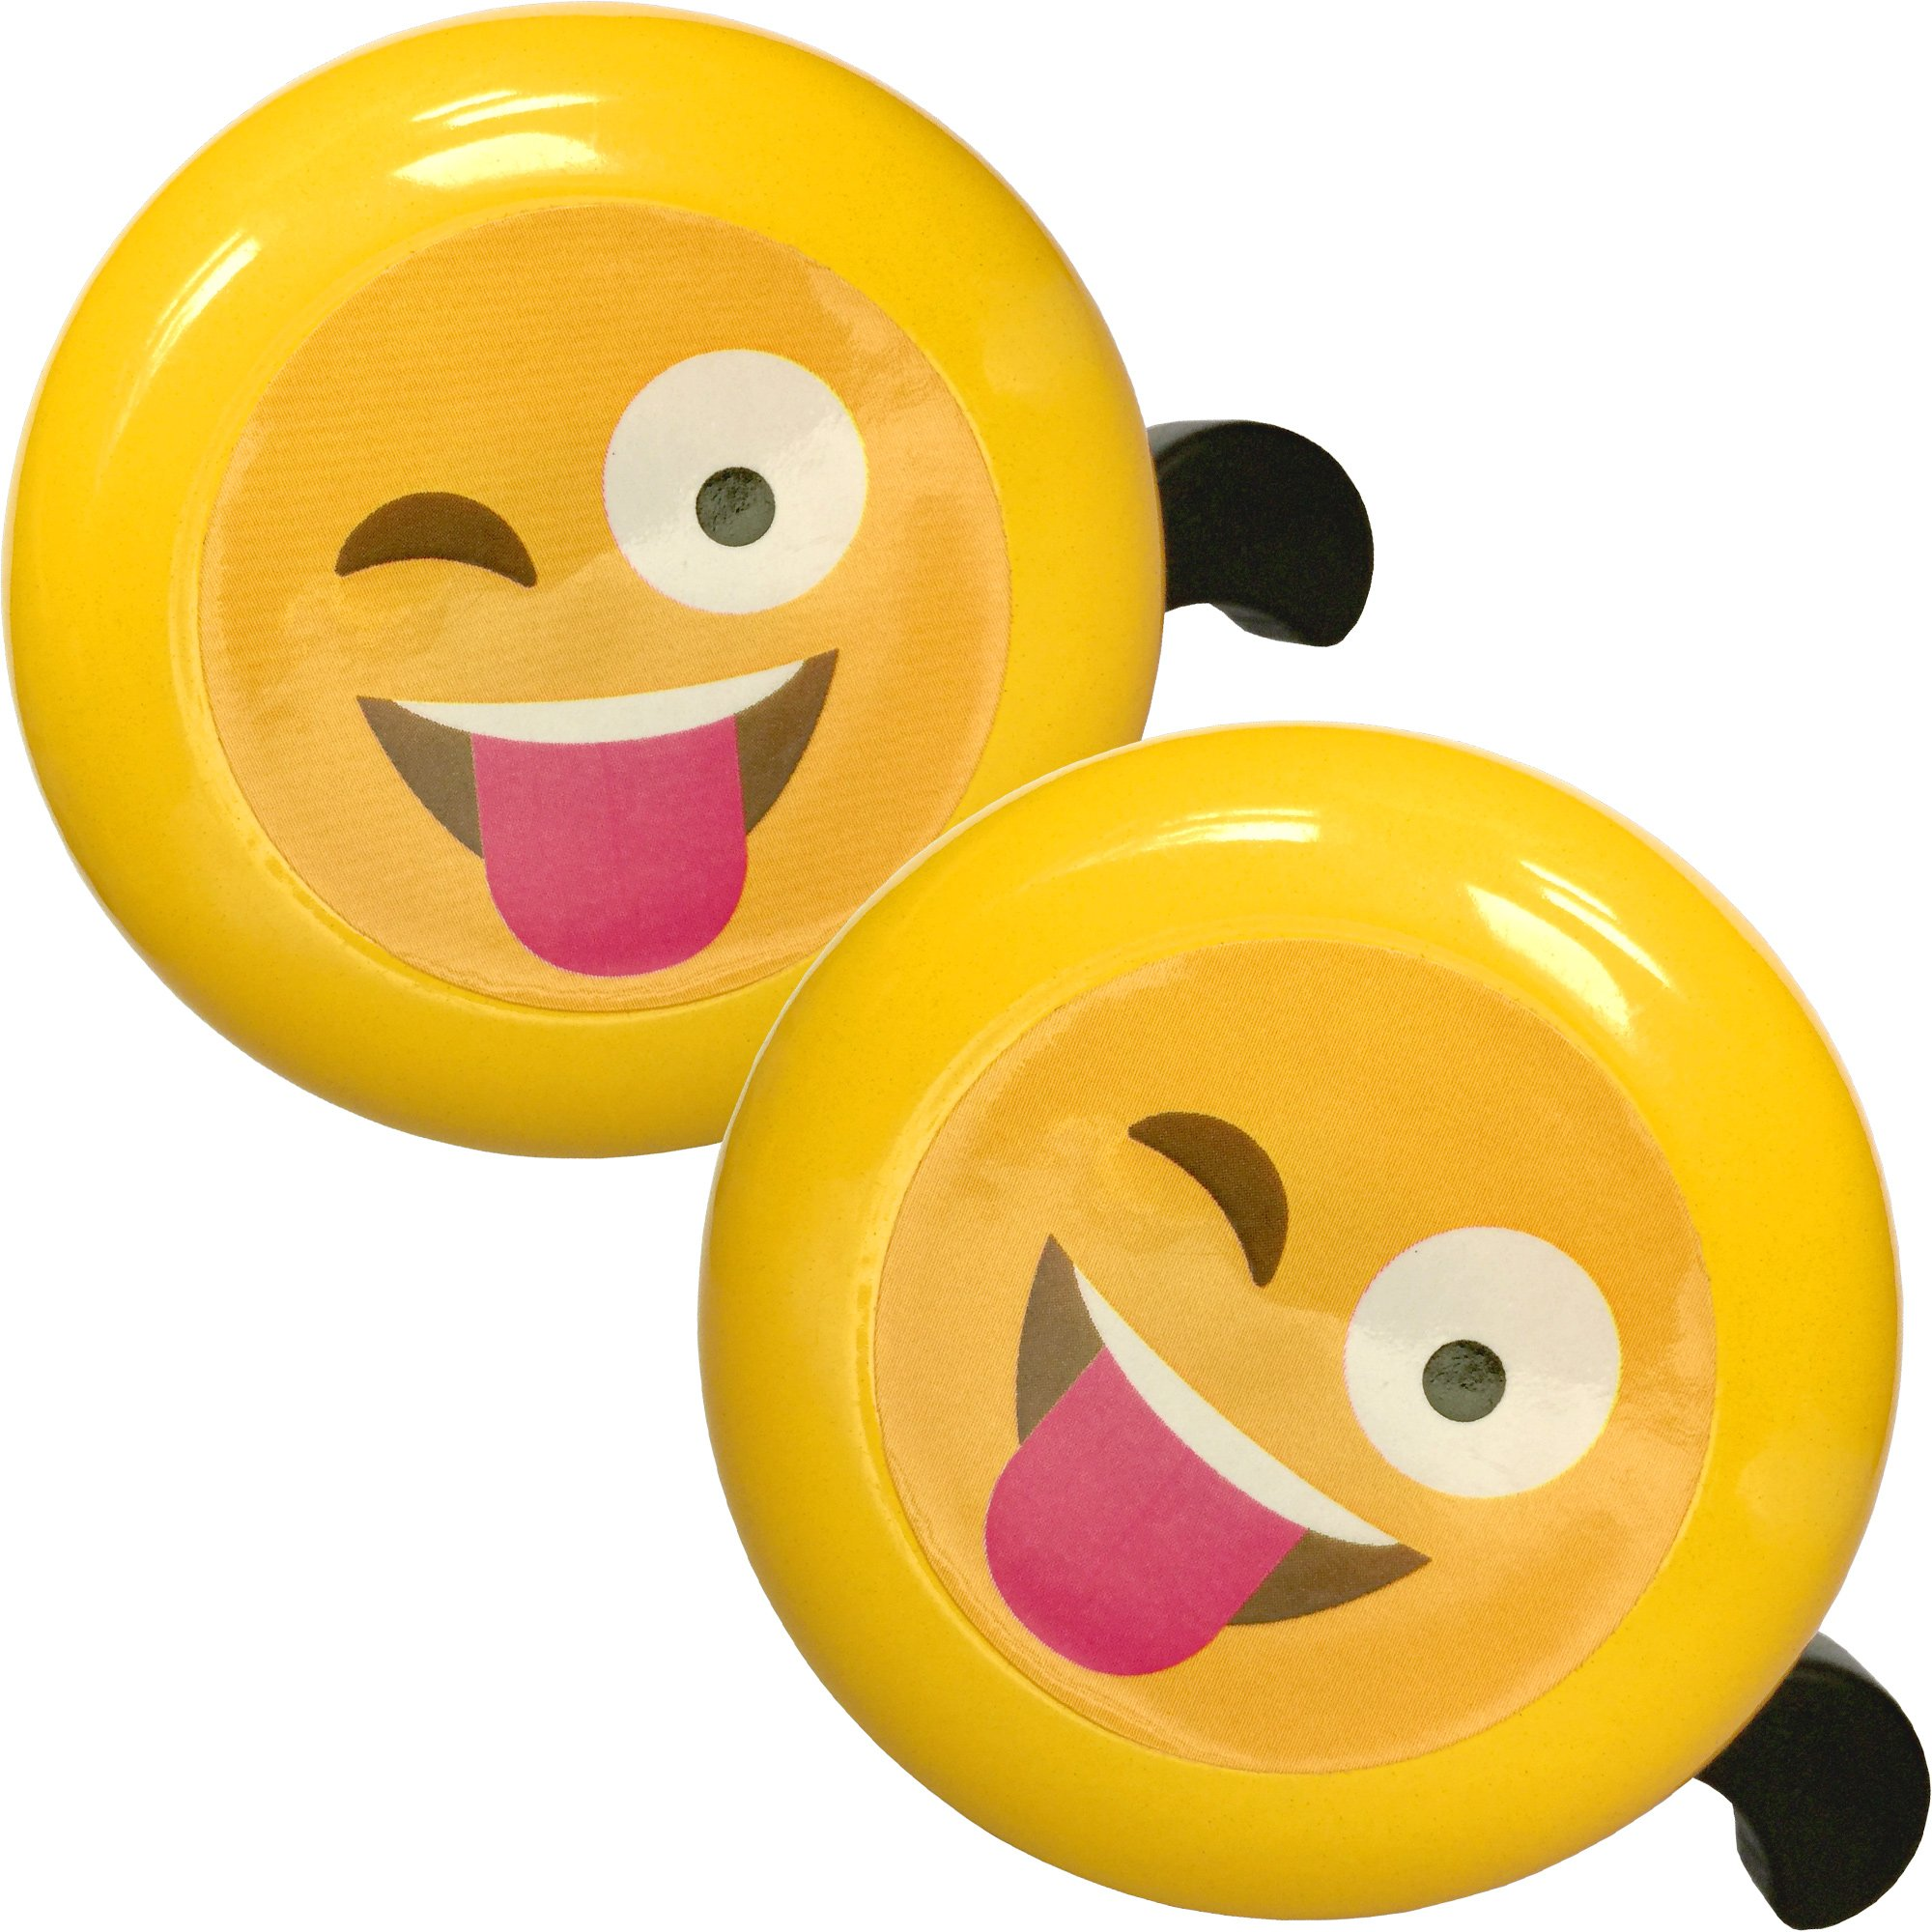 Bikes&.co 2 Pack - Emoji Bike Bell for Boys and Girls Children's Cycles or Toy Scooters from